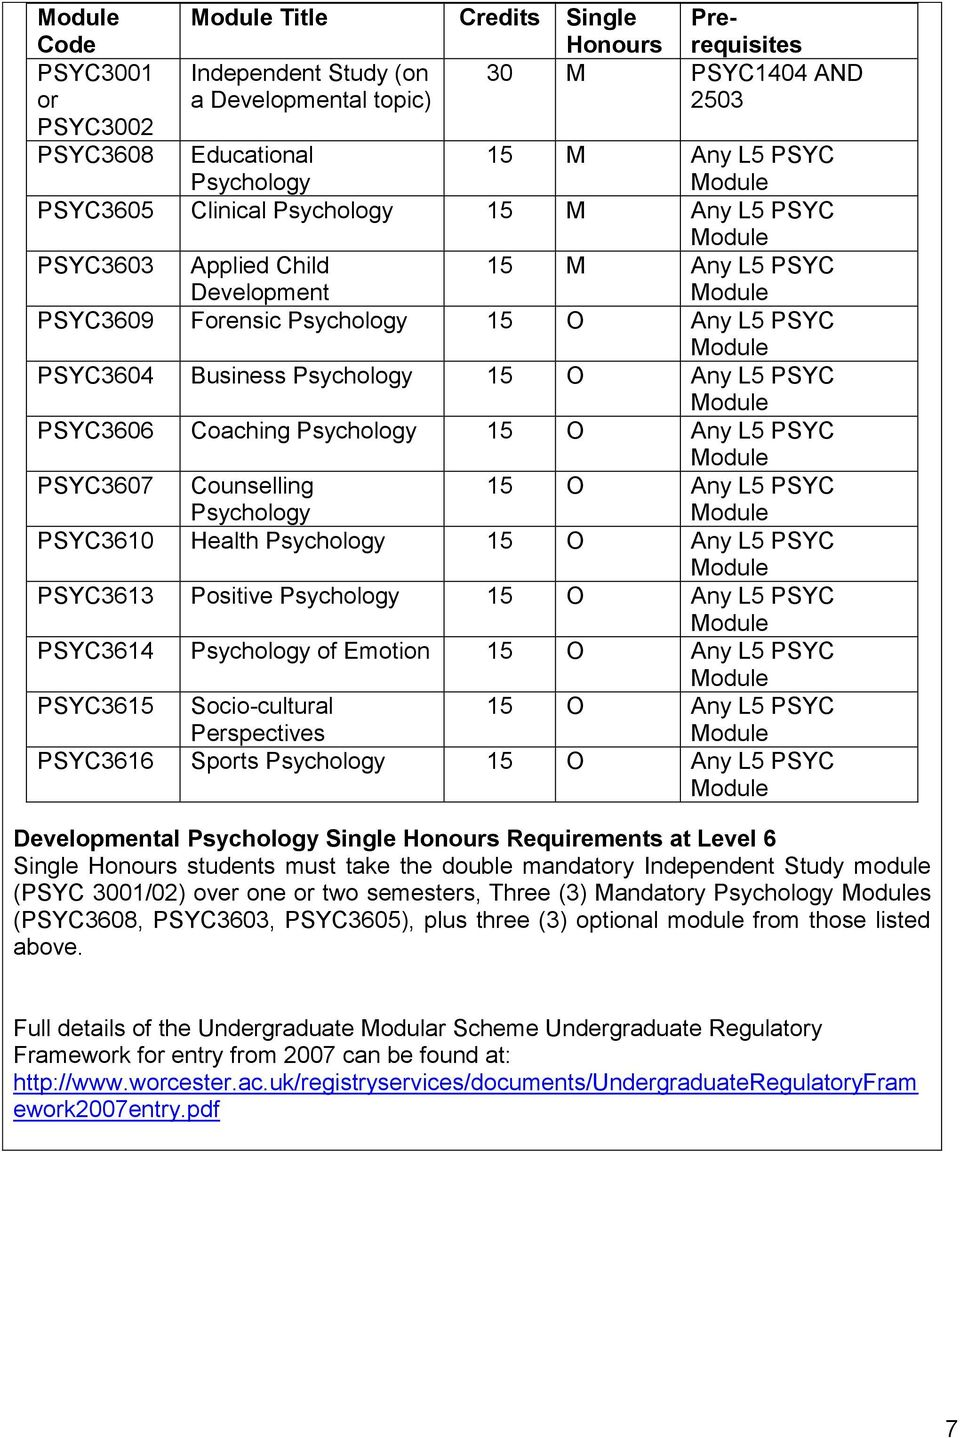 Psychology 15 O Any L5 PSYC PSYC3607 Counselling Psychology 15 O Any L5 PSYC PSYC3610 Health Psychology 15 O Any L5 PSYC PSYC3613 Positive Psychology 15 O Any L5 PSYC PSYC3614 Psychology of Emotion